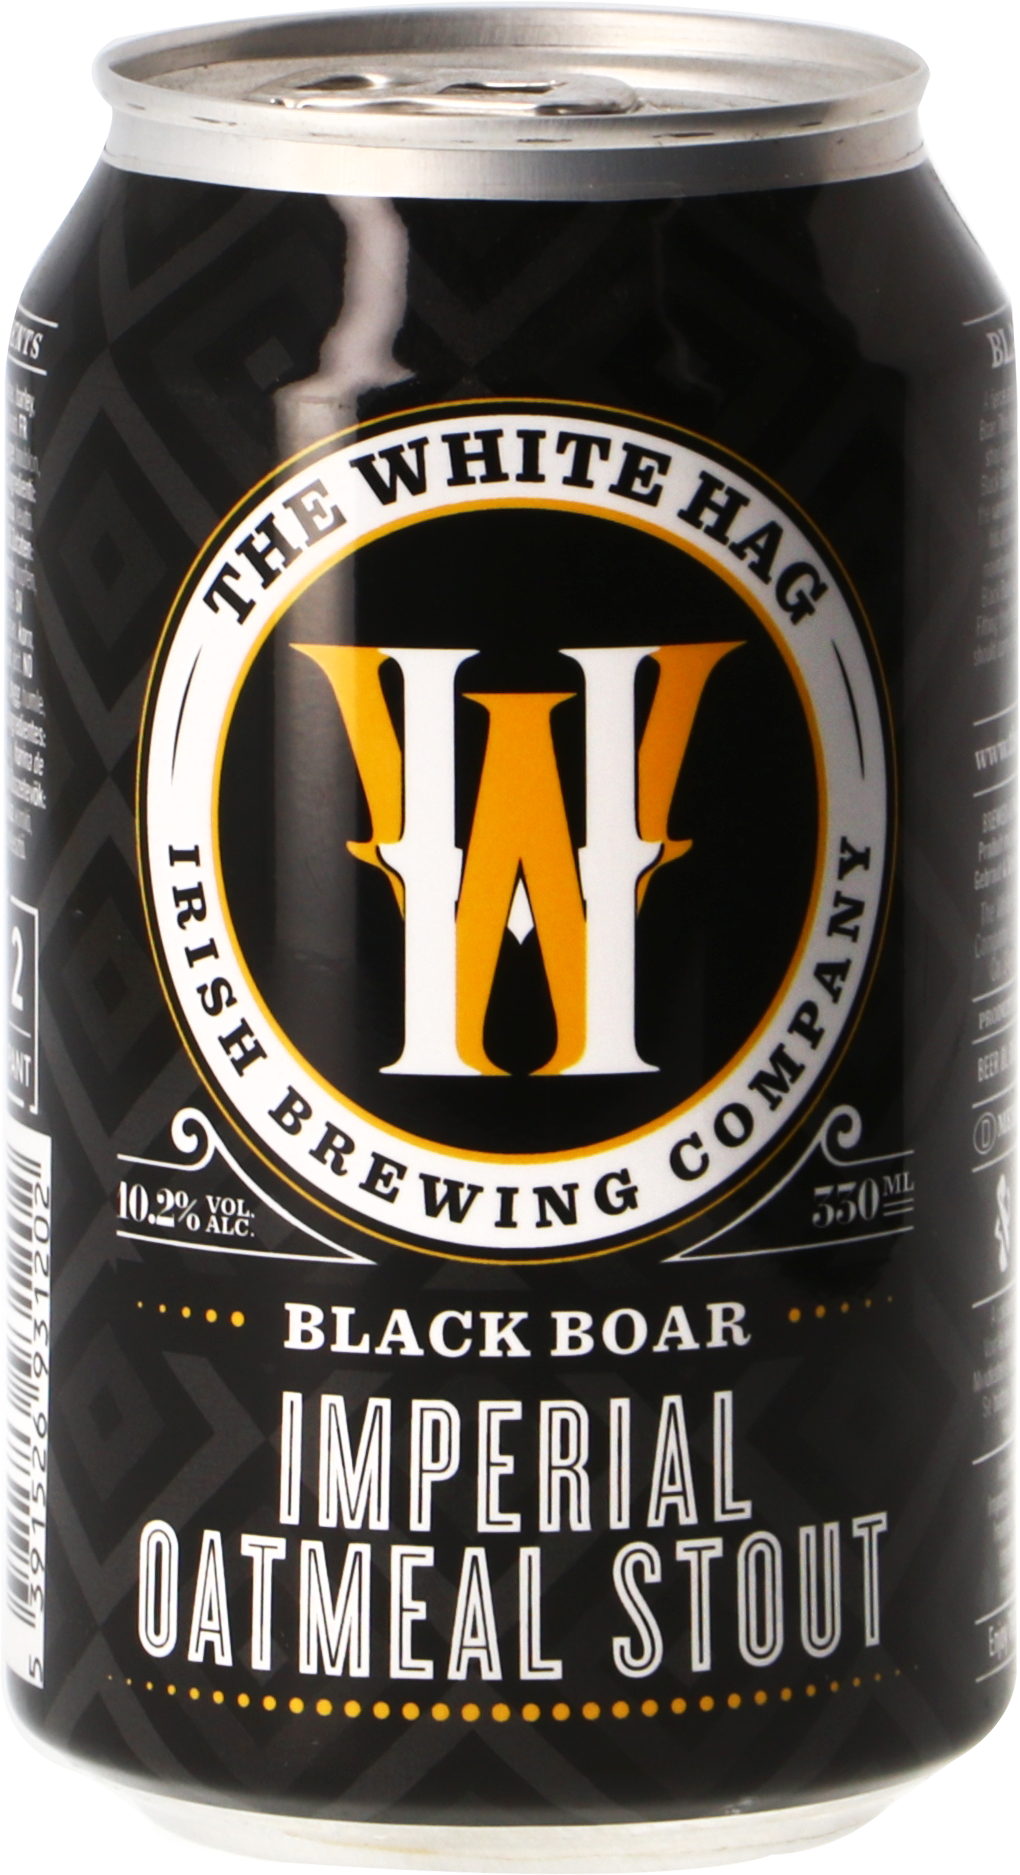 The White Hag Black Boar